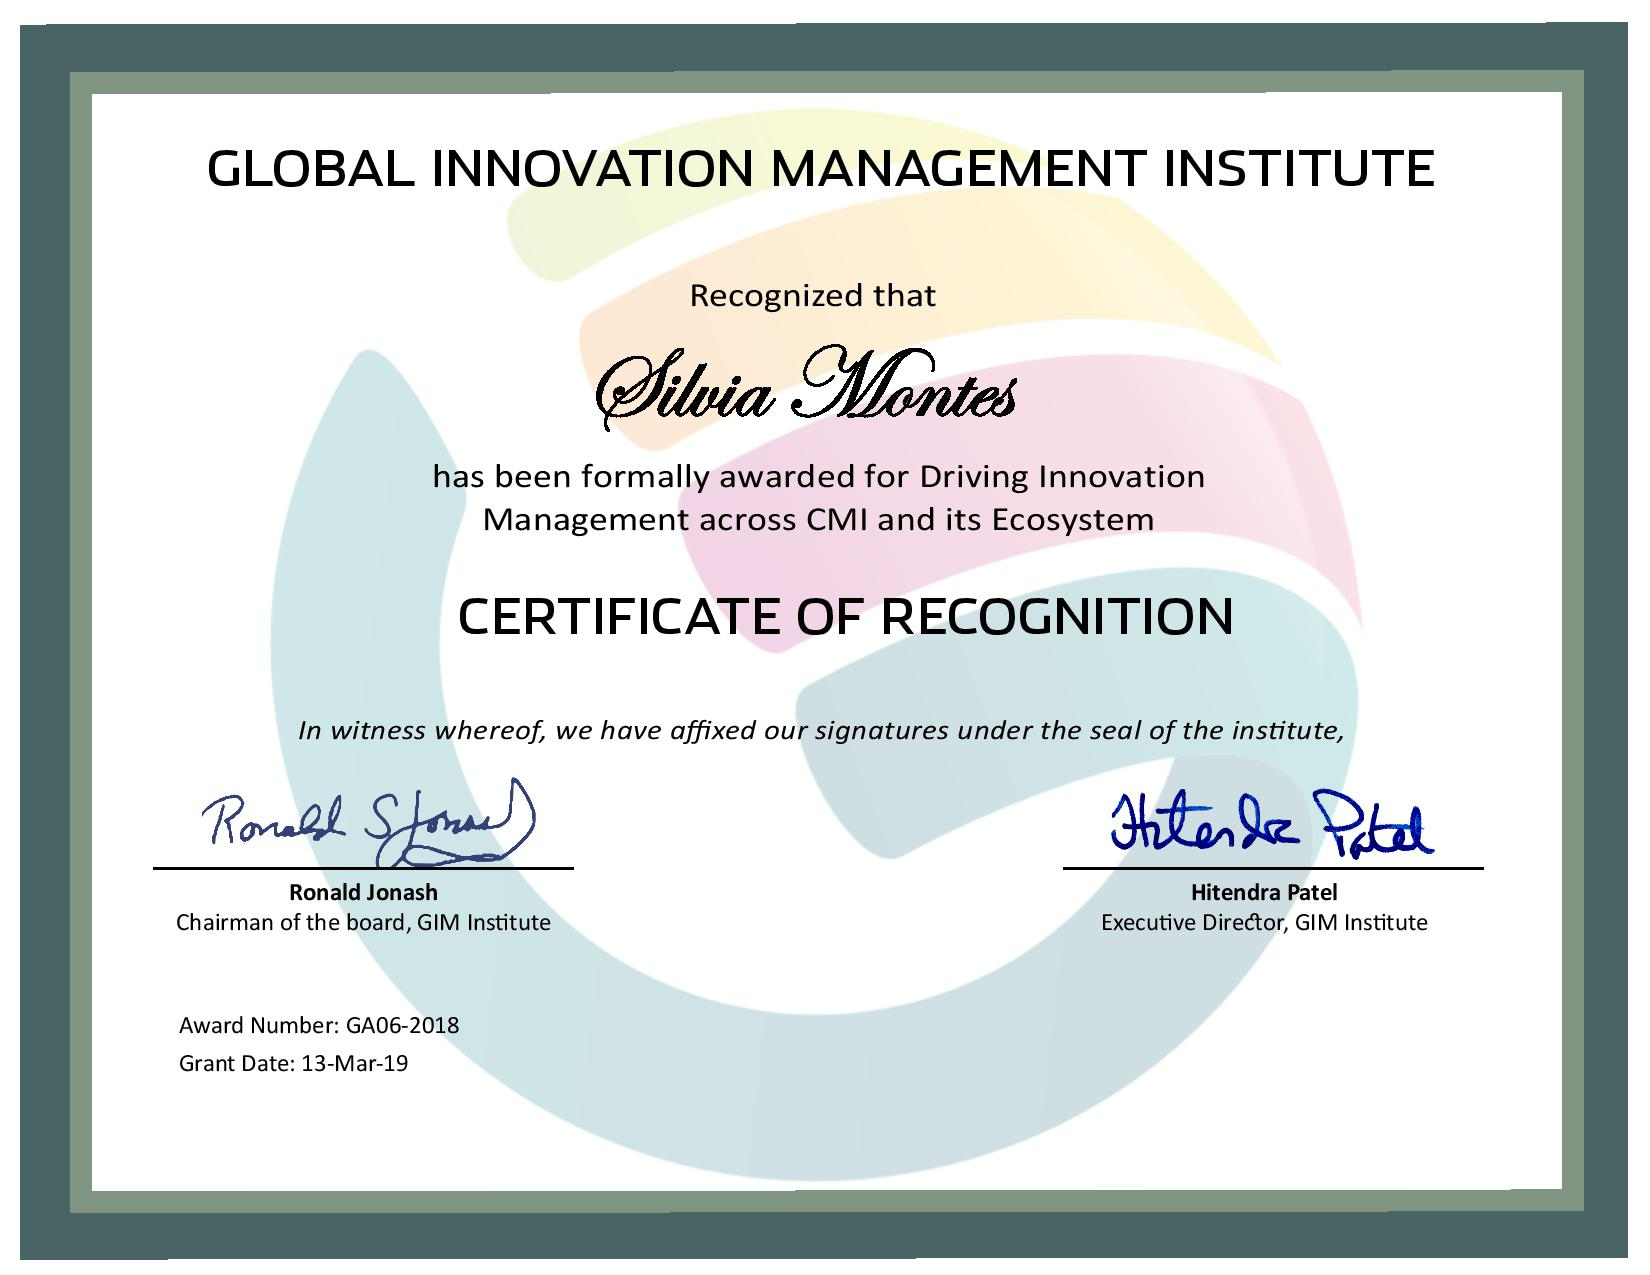 for Driving Innovation Management across CMI and its Ecosystem